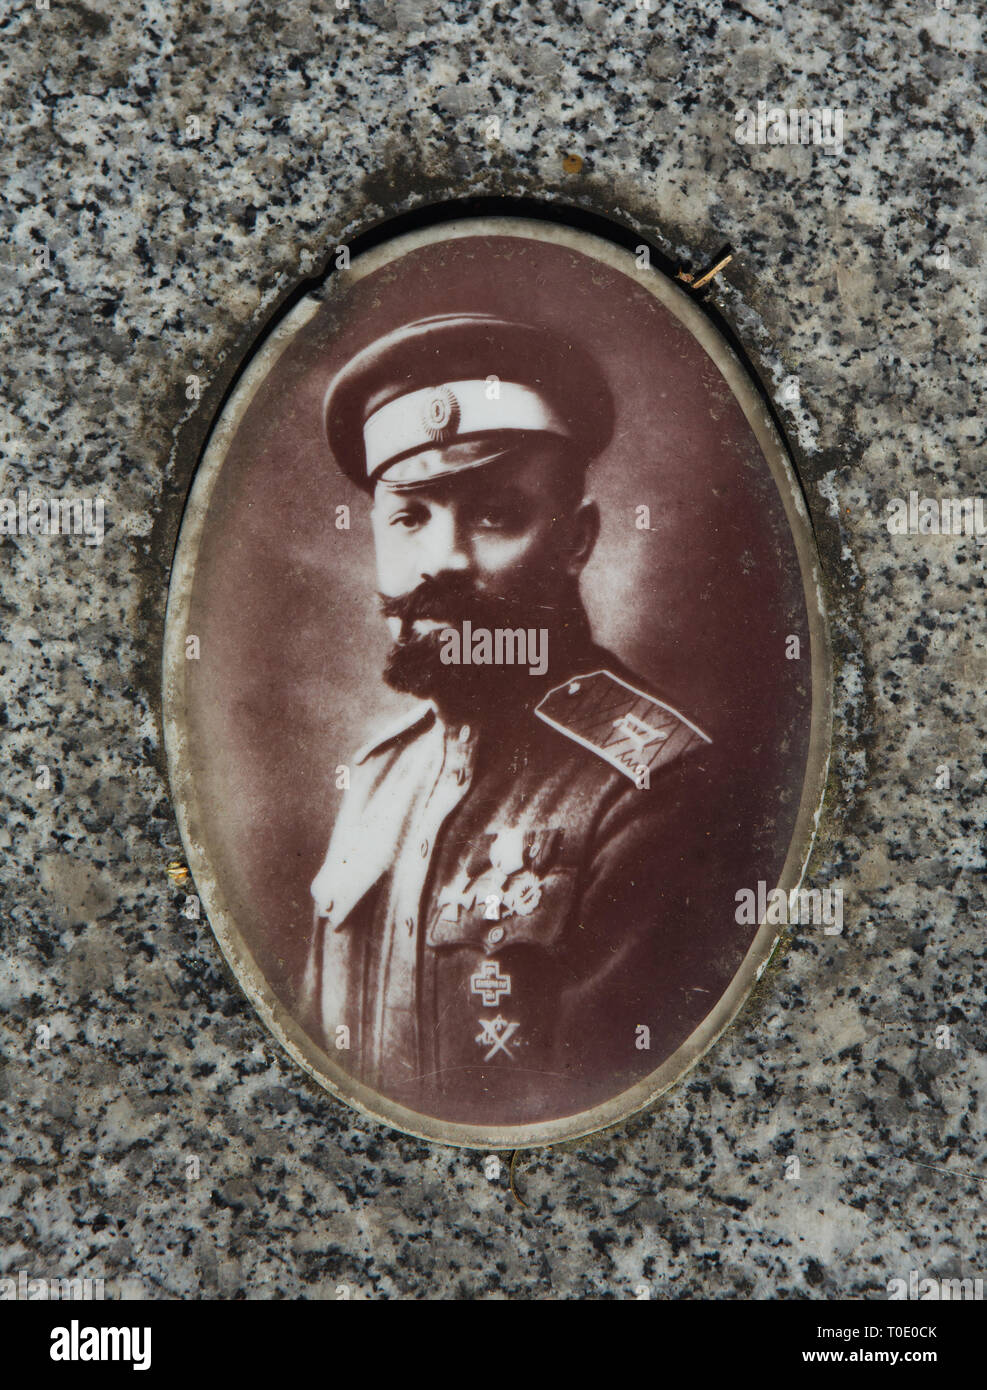 Russian general Alexander Kutepov depicted on his cenotaph at the Russian Cemetery in Sainte-Geneviève-des-Bois (Cimetière russe de Sainte-Geneviève-des-Bois) near Paris, France. General Kutepov was one of the leaders of the White Army during the Russian Civil War and the commander of the Russian All-Military Union (ROVS) in exile. On 26 January 1930, he was kidnapped in Paris by agents of the Soviet secret service OGPU, later known as the NKVD and the KGB. His body was never found. - Stock Image